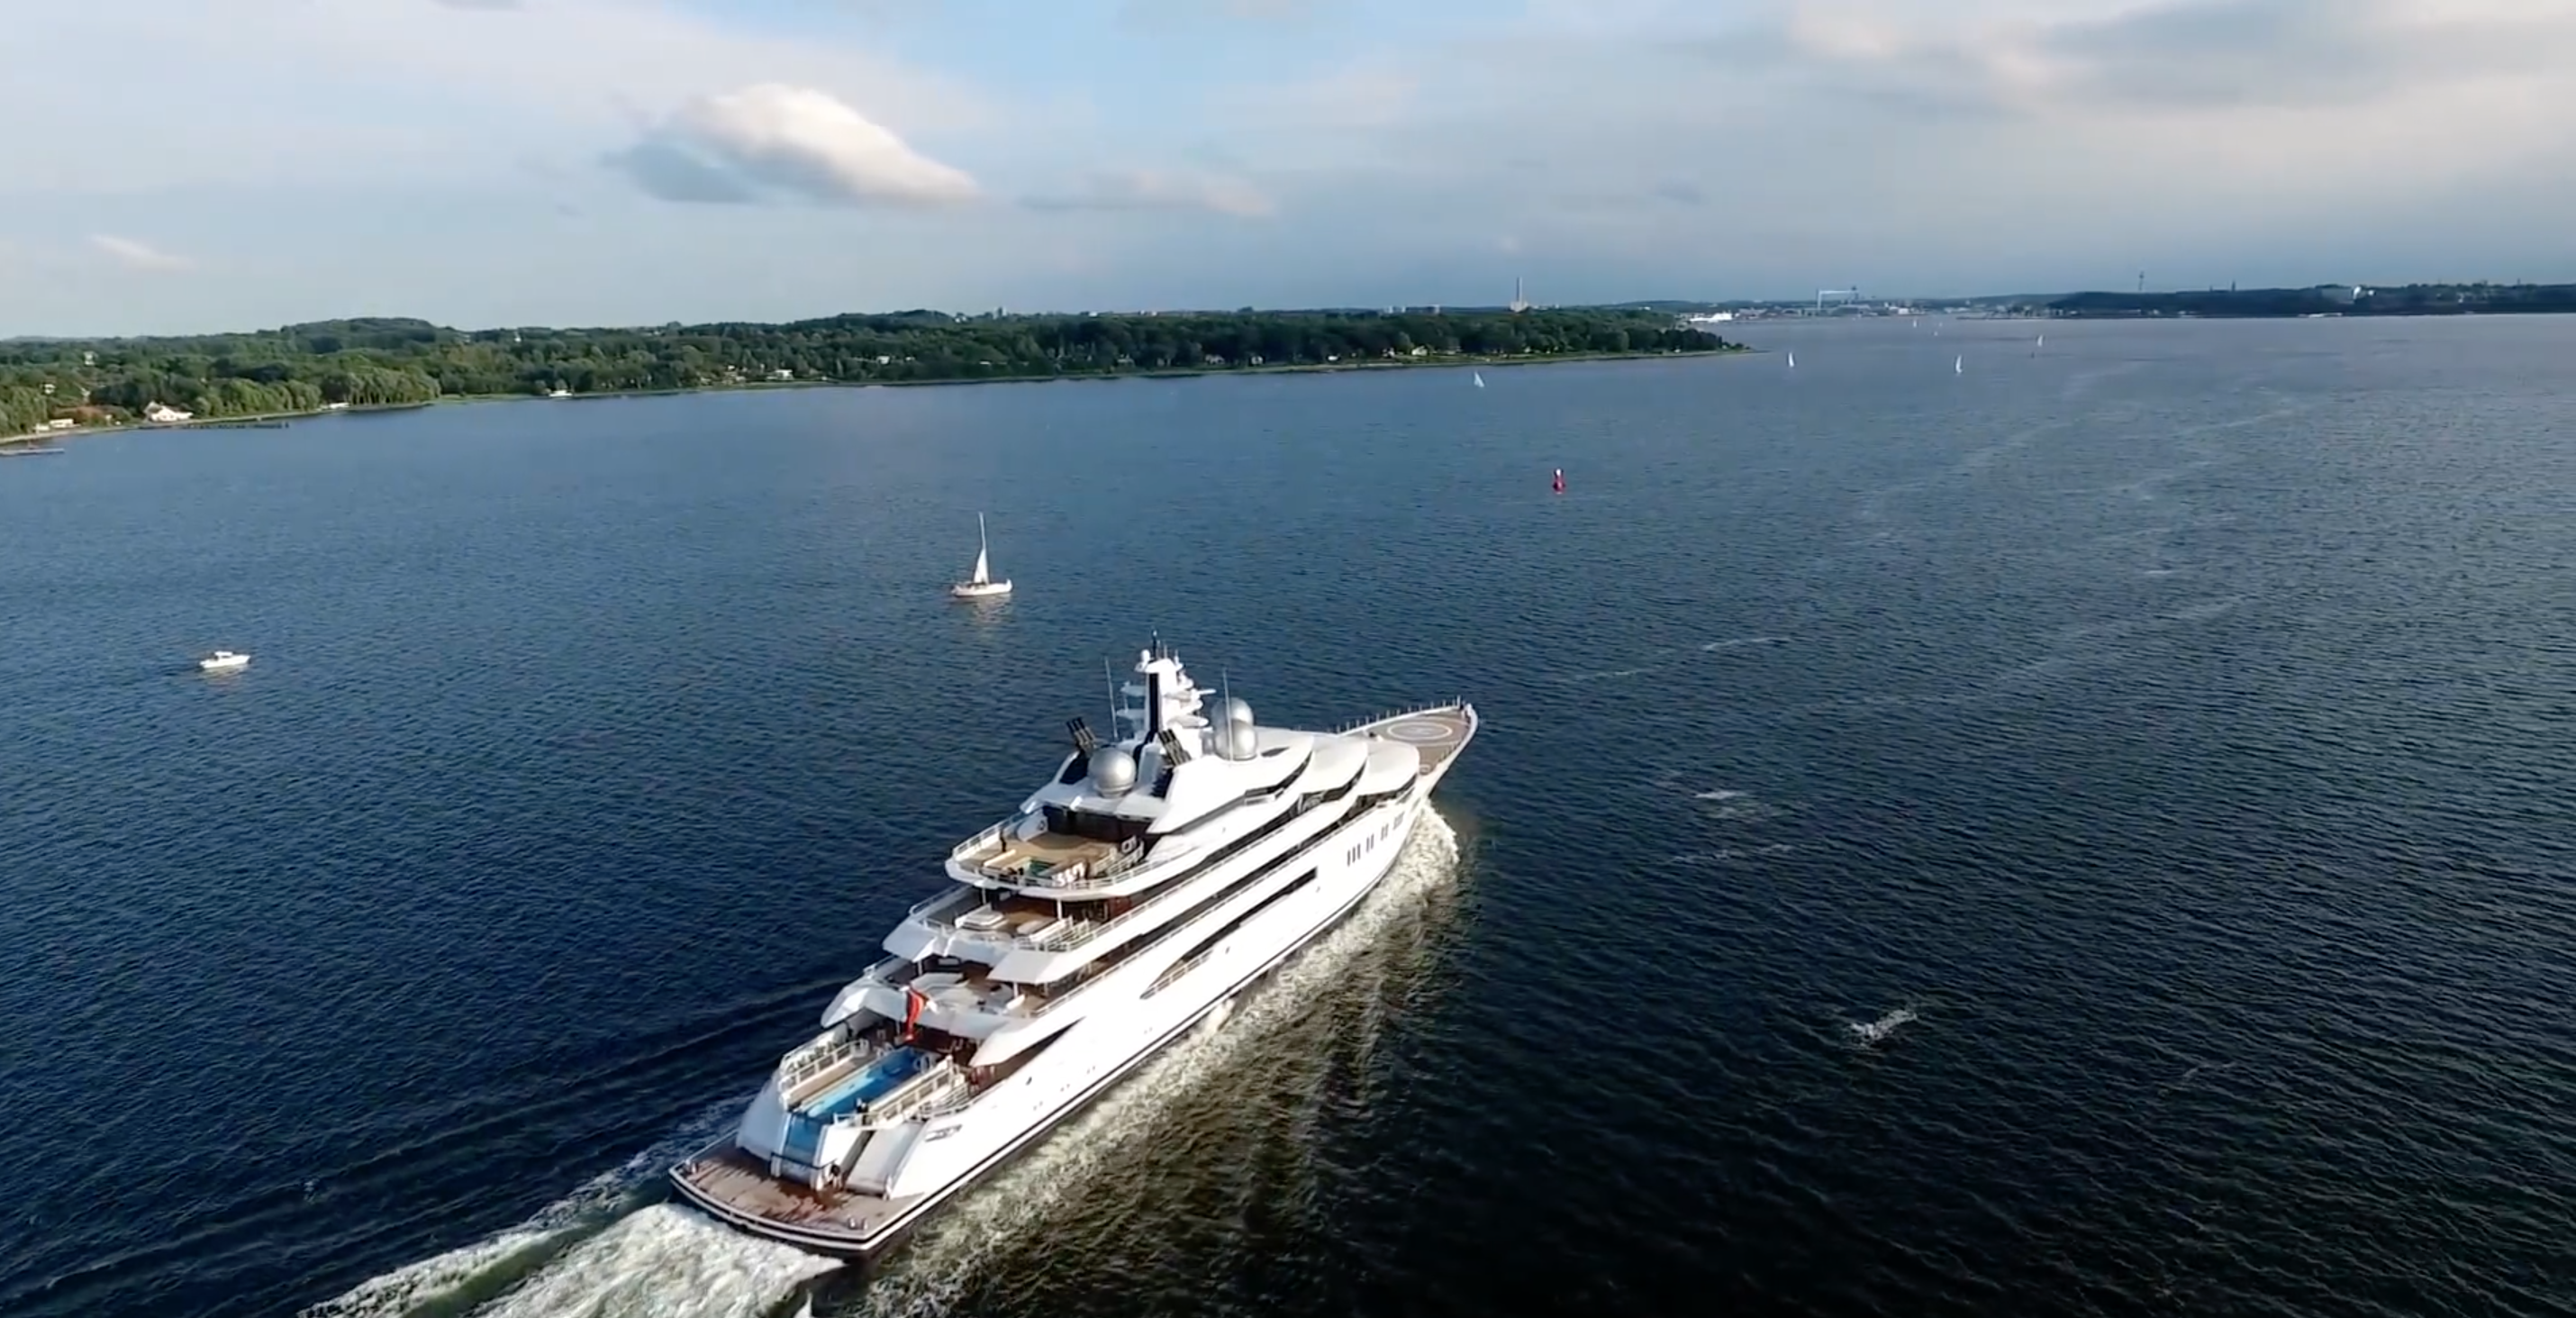 Motor yacht Amadea - drone footage. Photo credit AS-Flycam-Kiel.de